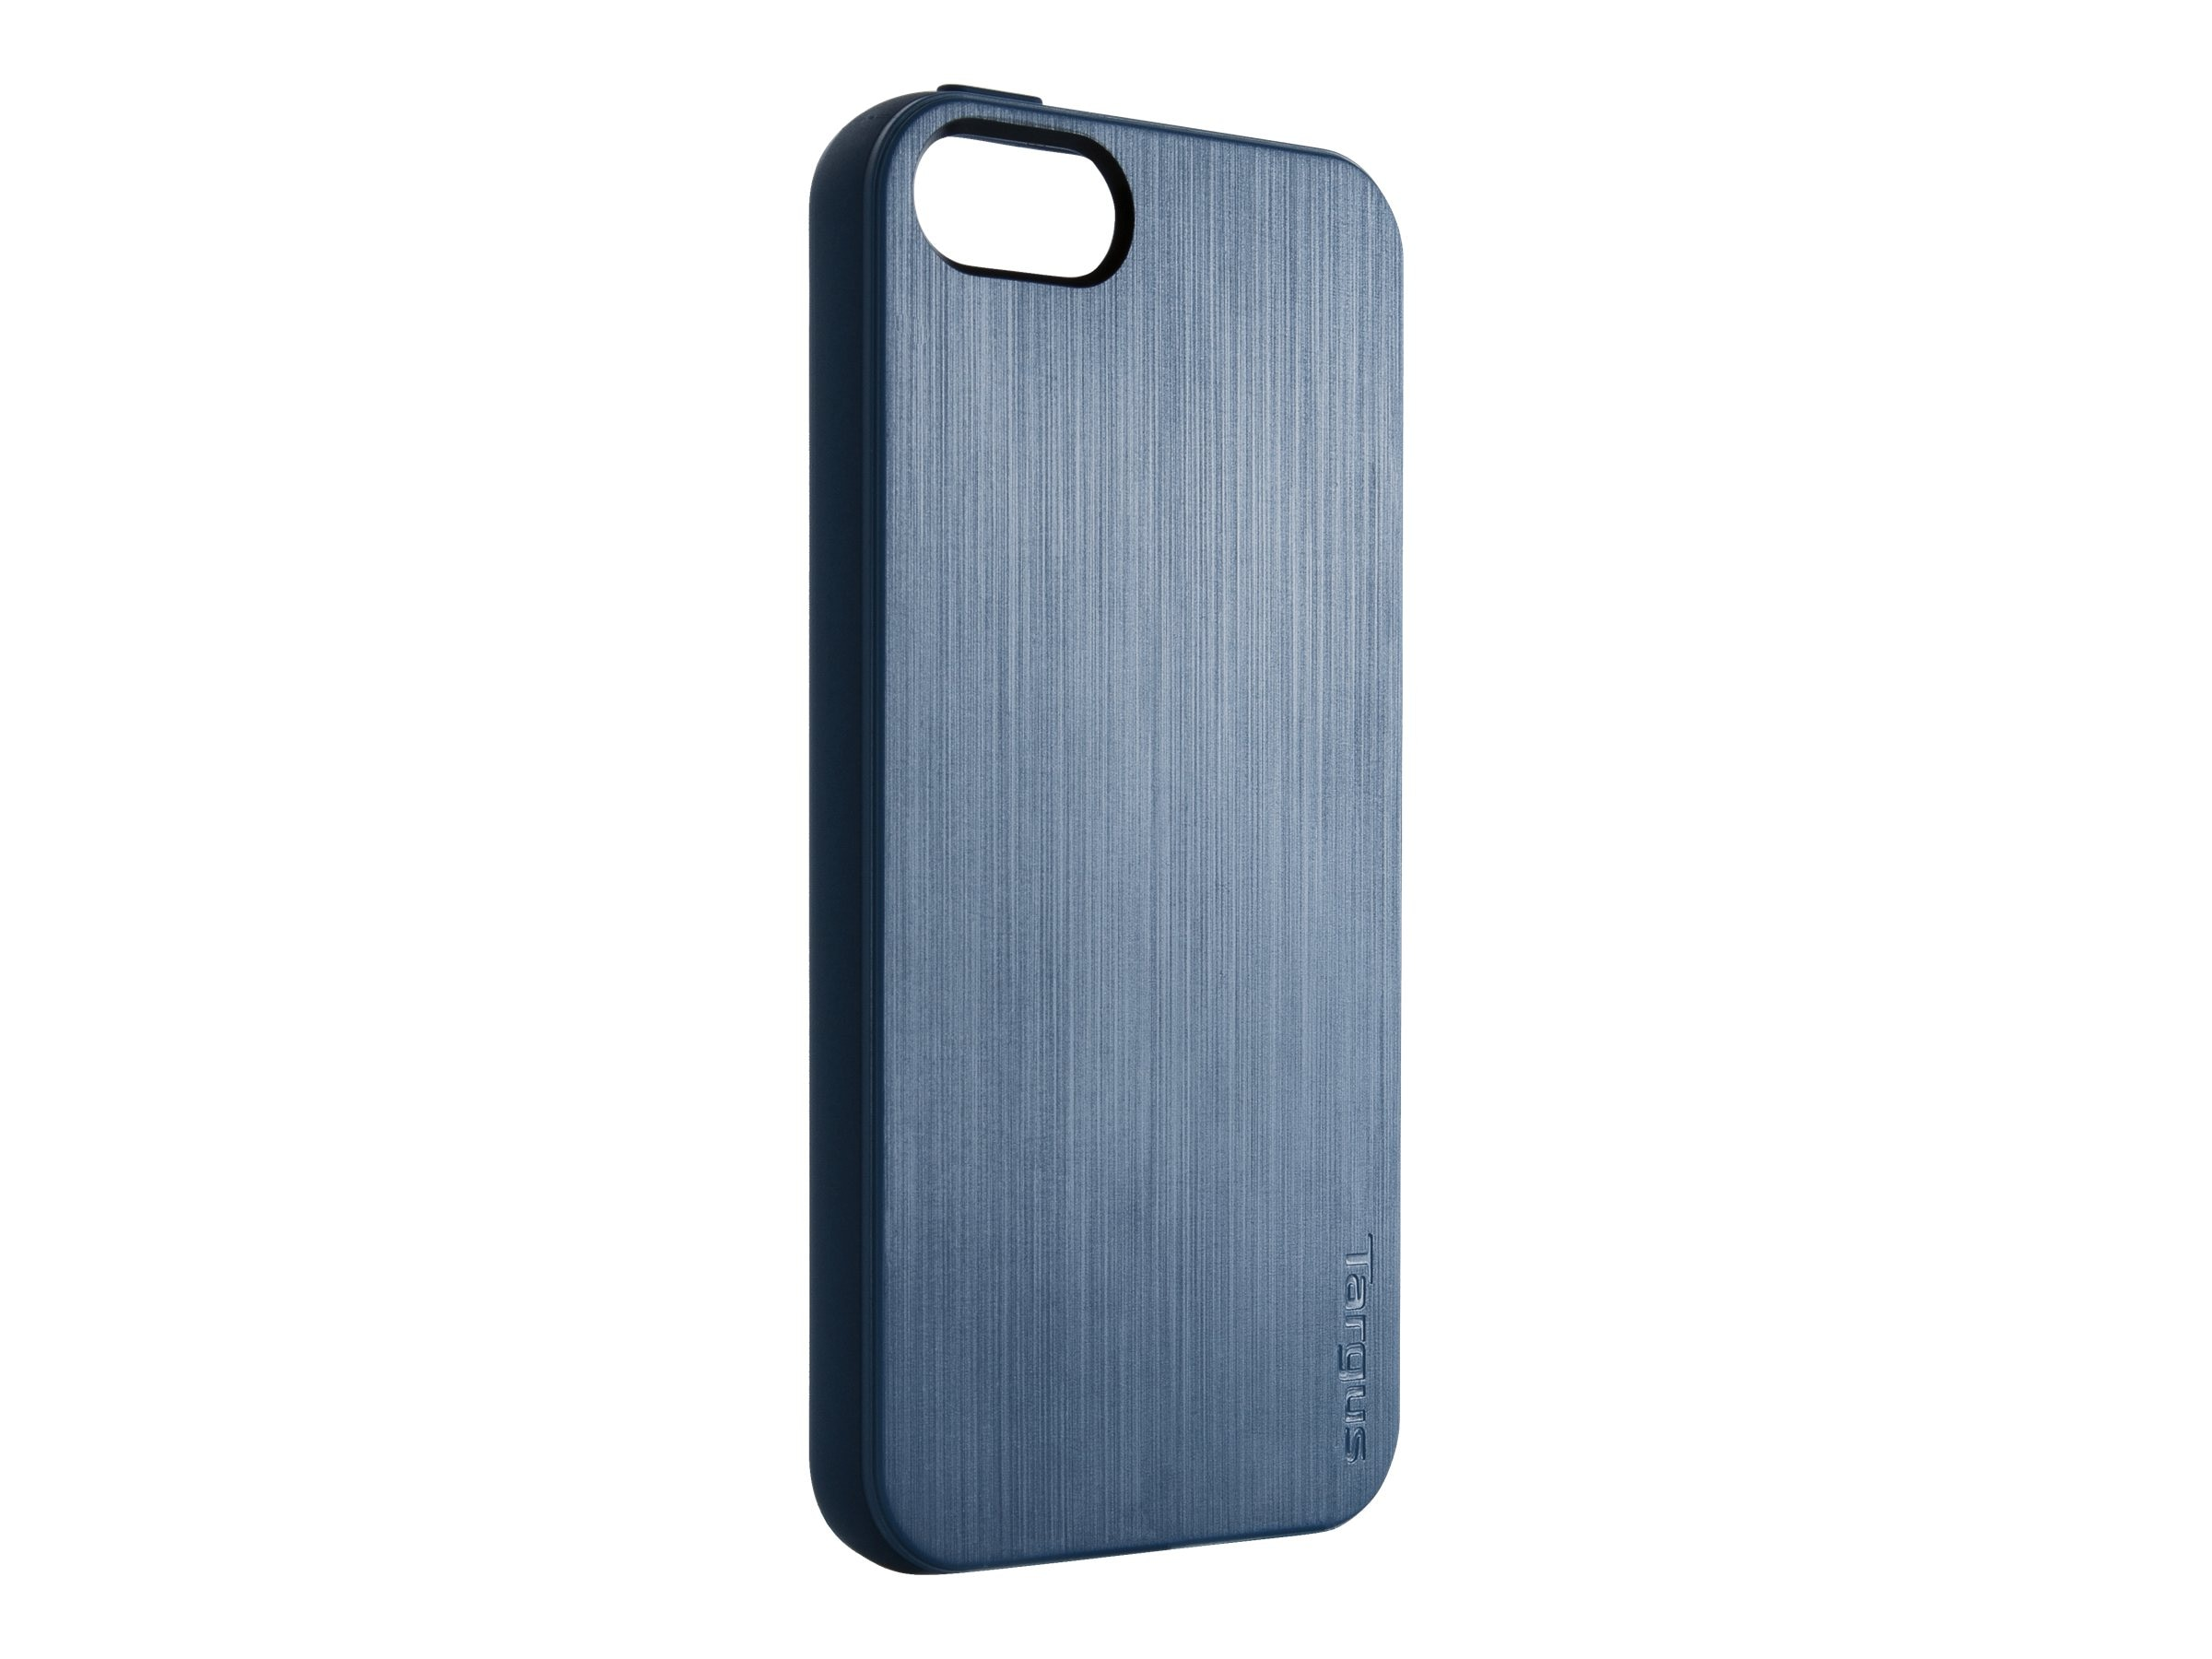 Targus Slim-Fit Back Cover for iPhone 5, Blue, THD03102US, 14765670, Carrying Cases - Phones/PDAs